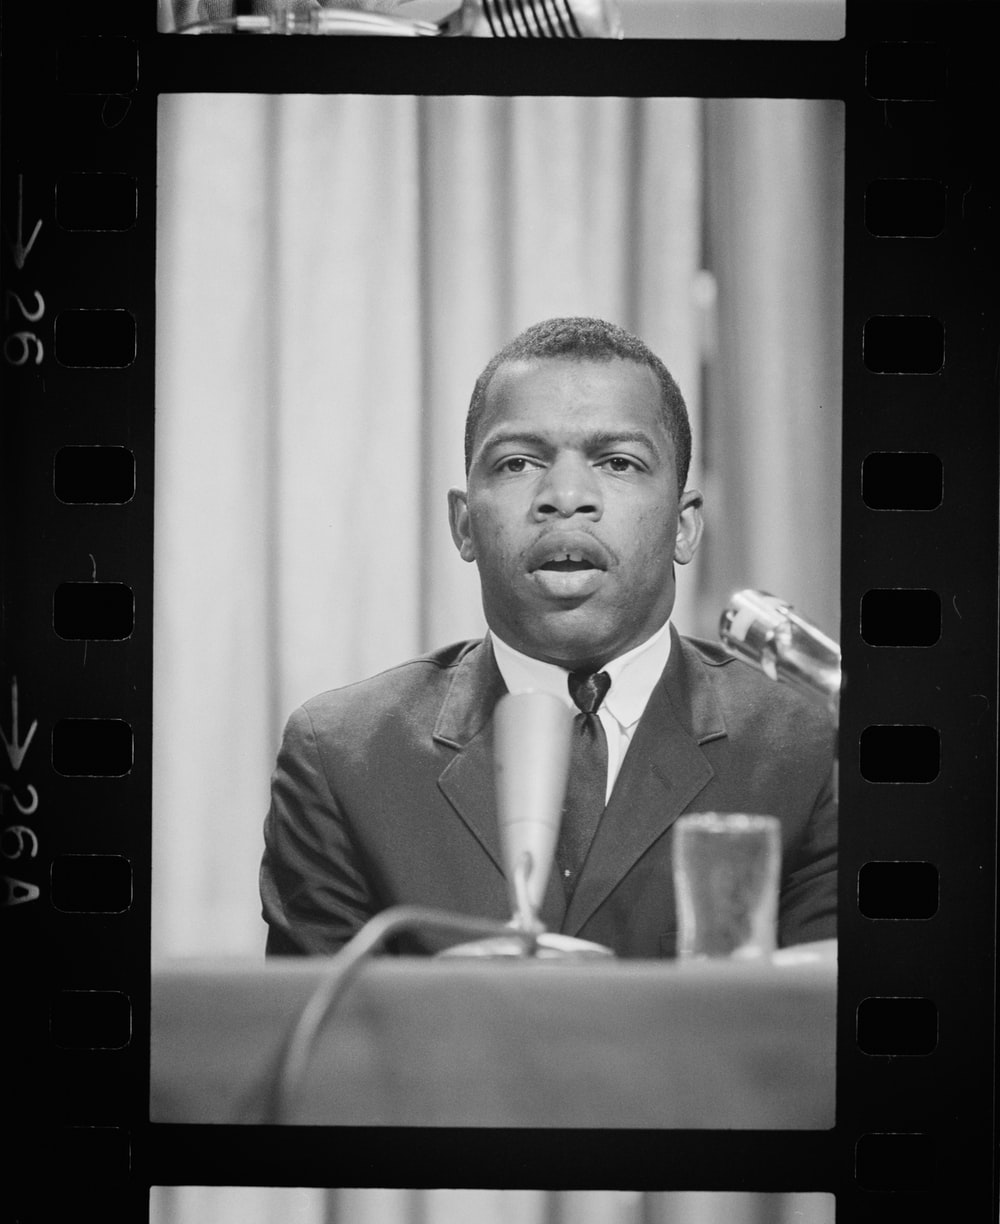 John Lewis speaking at a meeting of American Society of Newspaper Editors, Statler Hilton Hotel, Washington, D.C